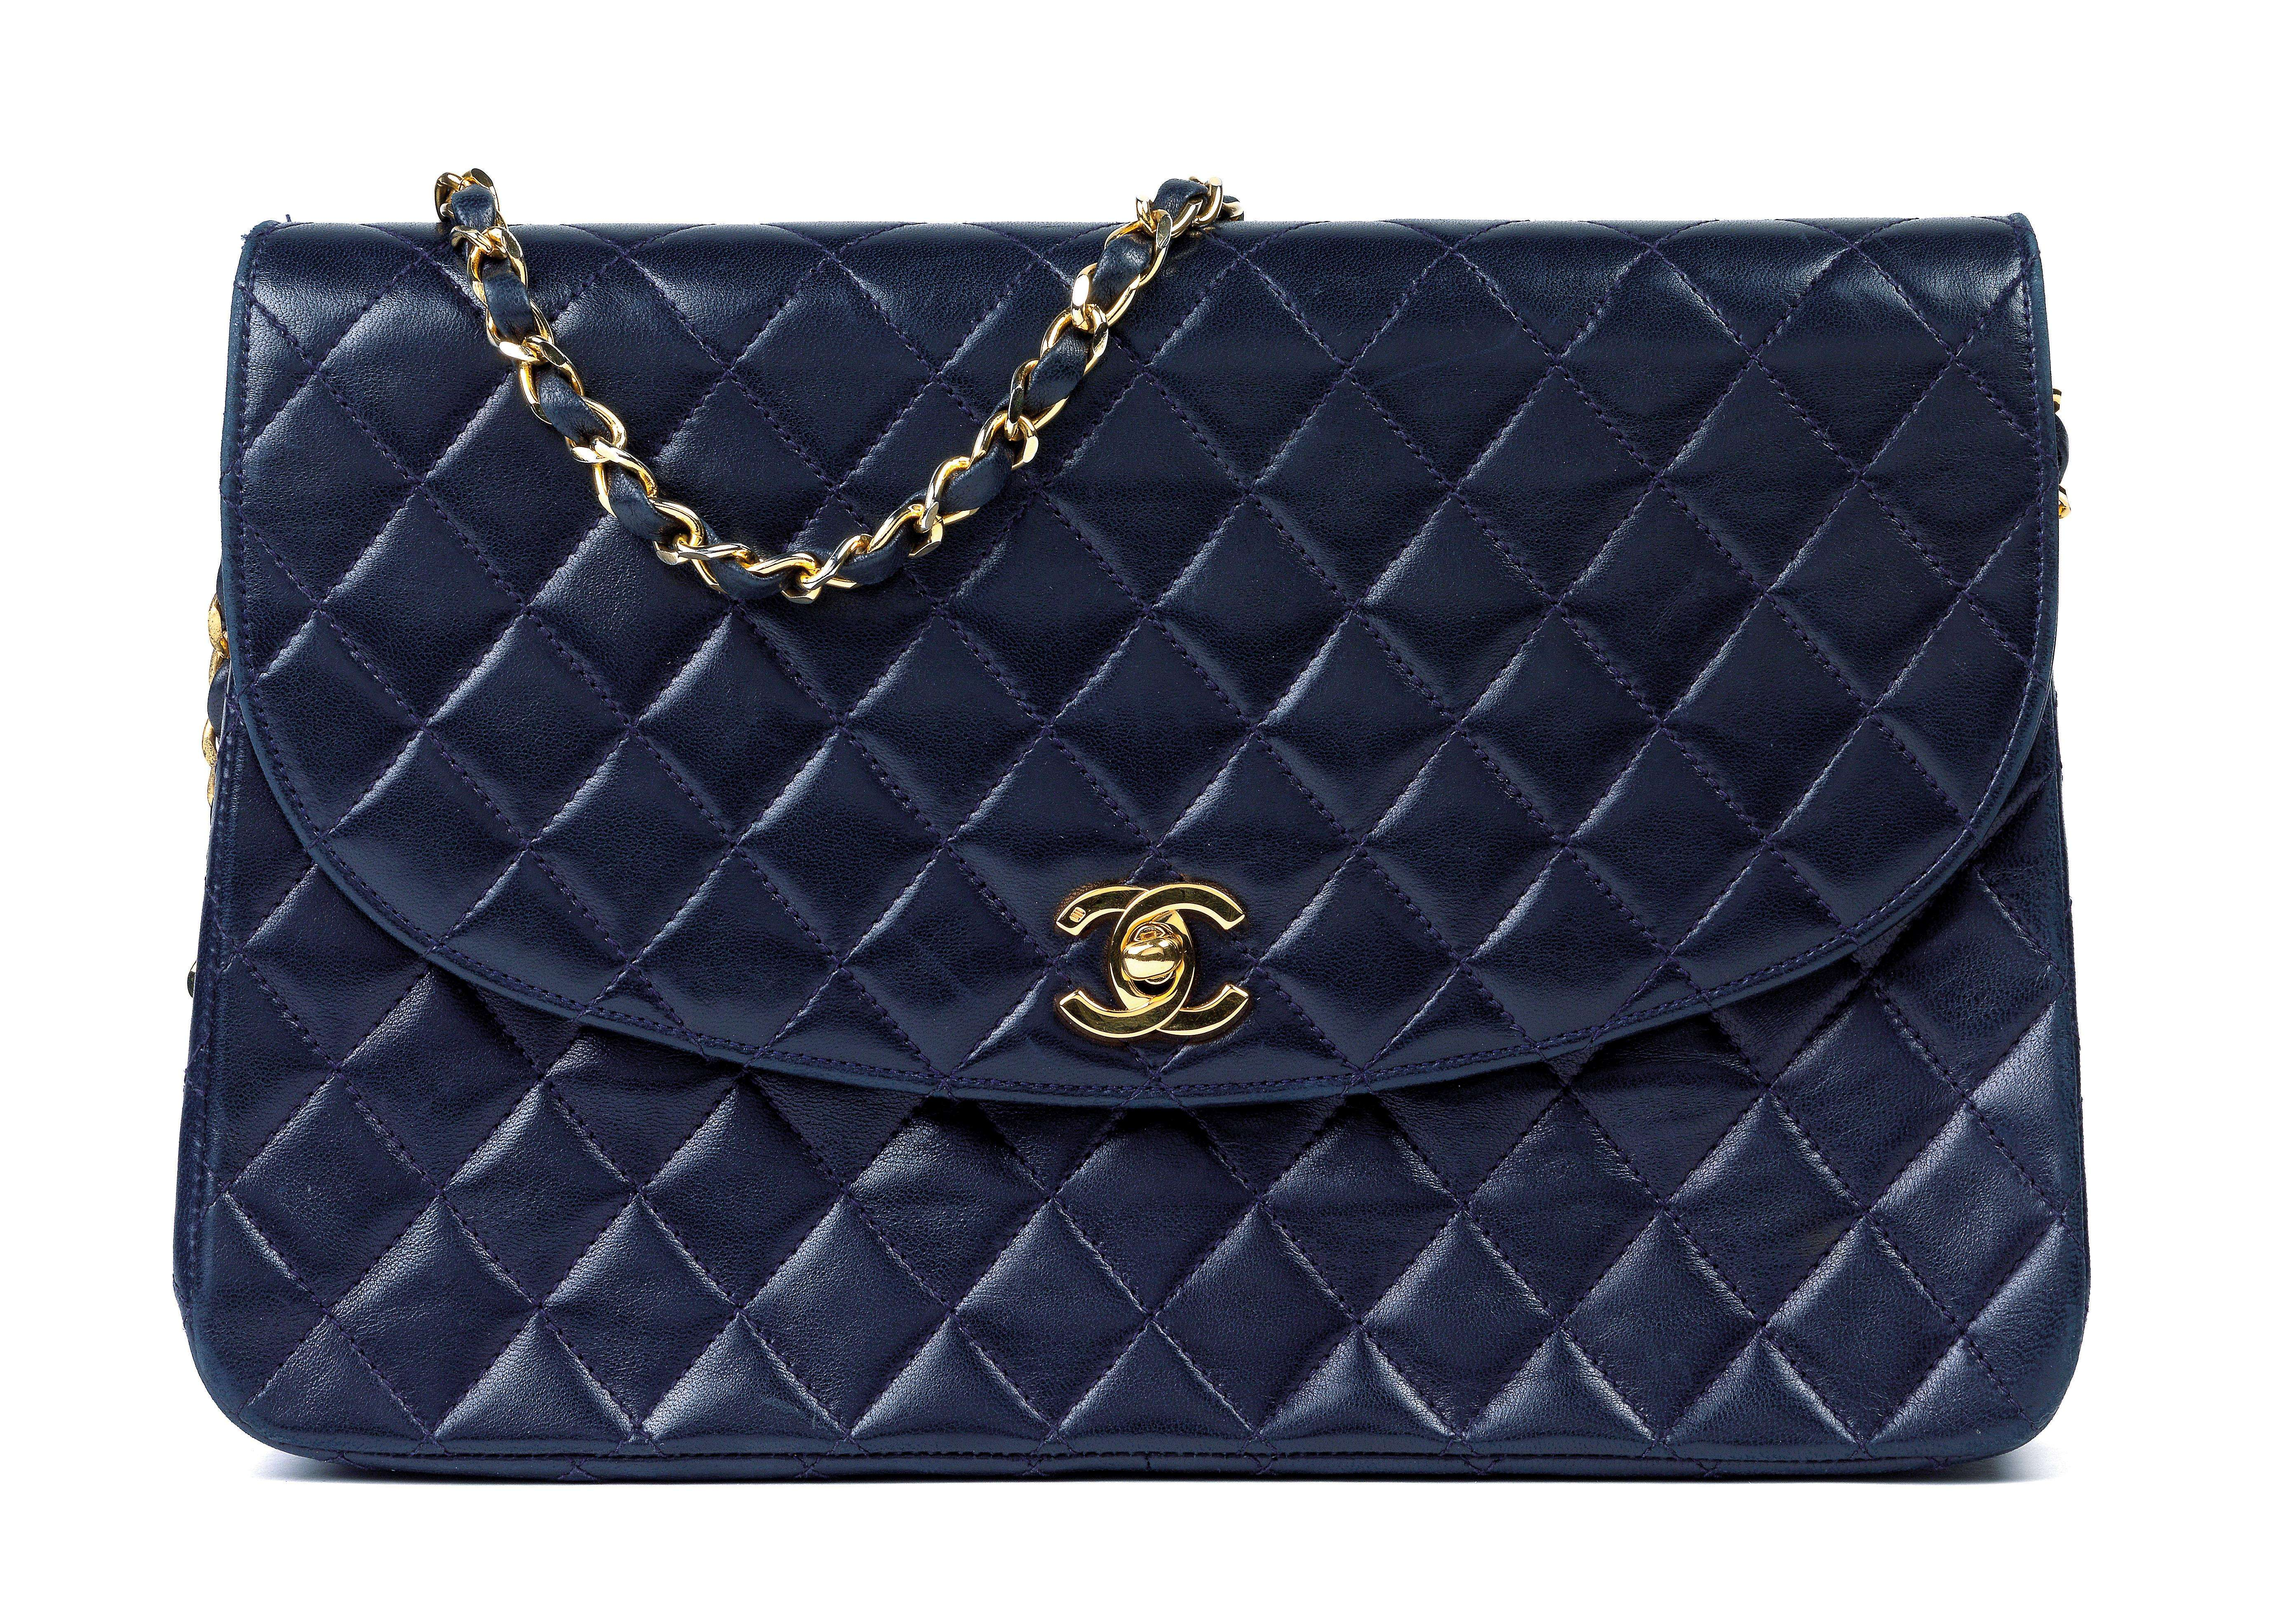 A Chanel Quilted Navy Blue Flap Bag